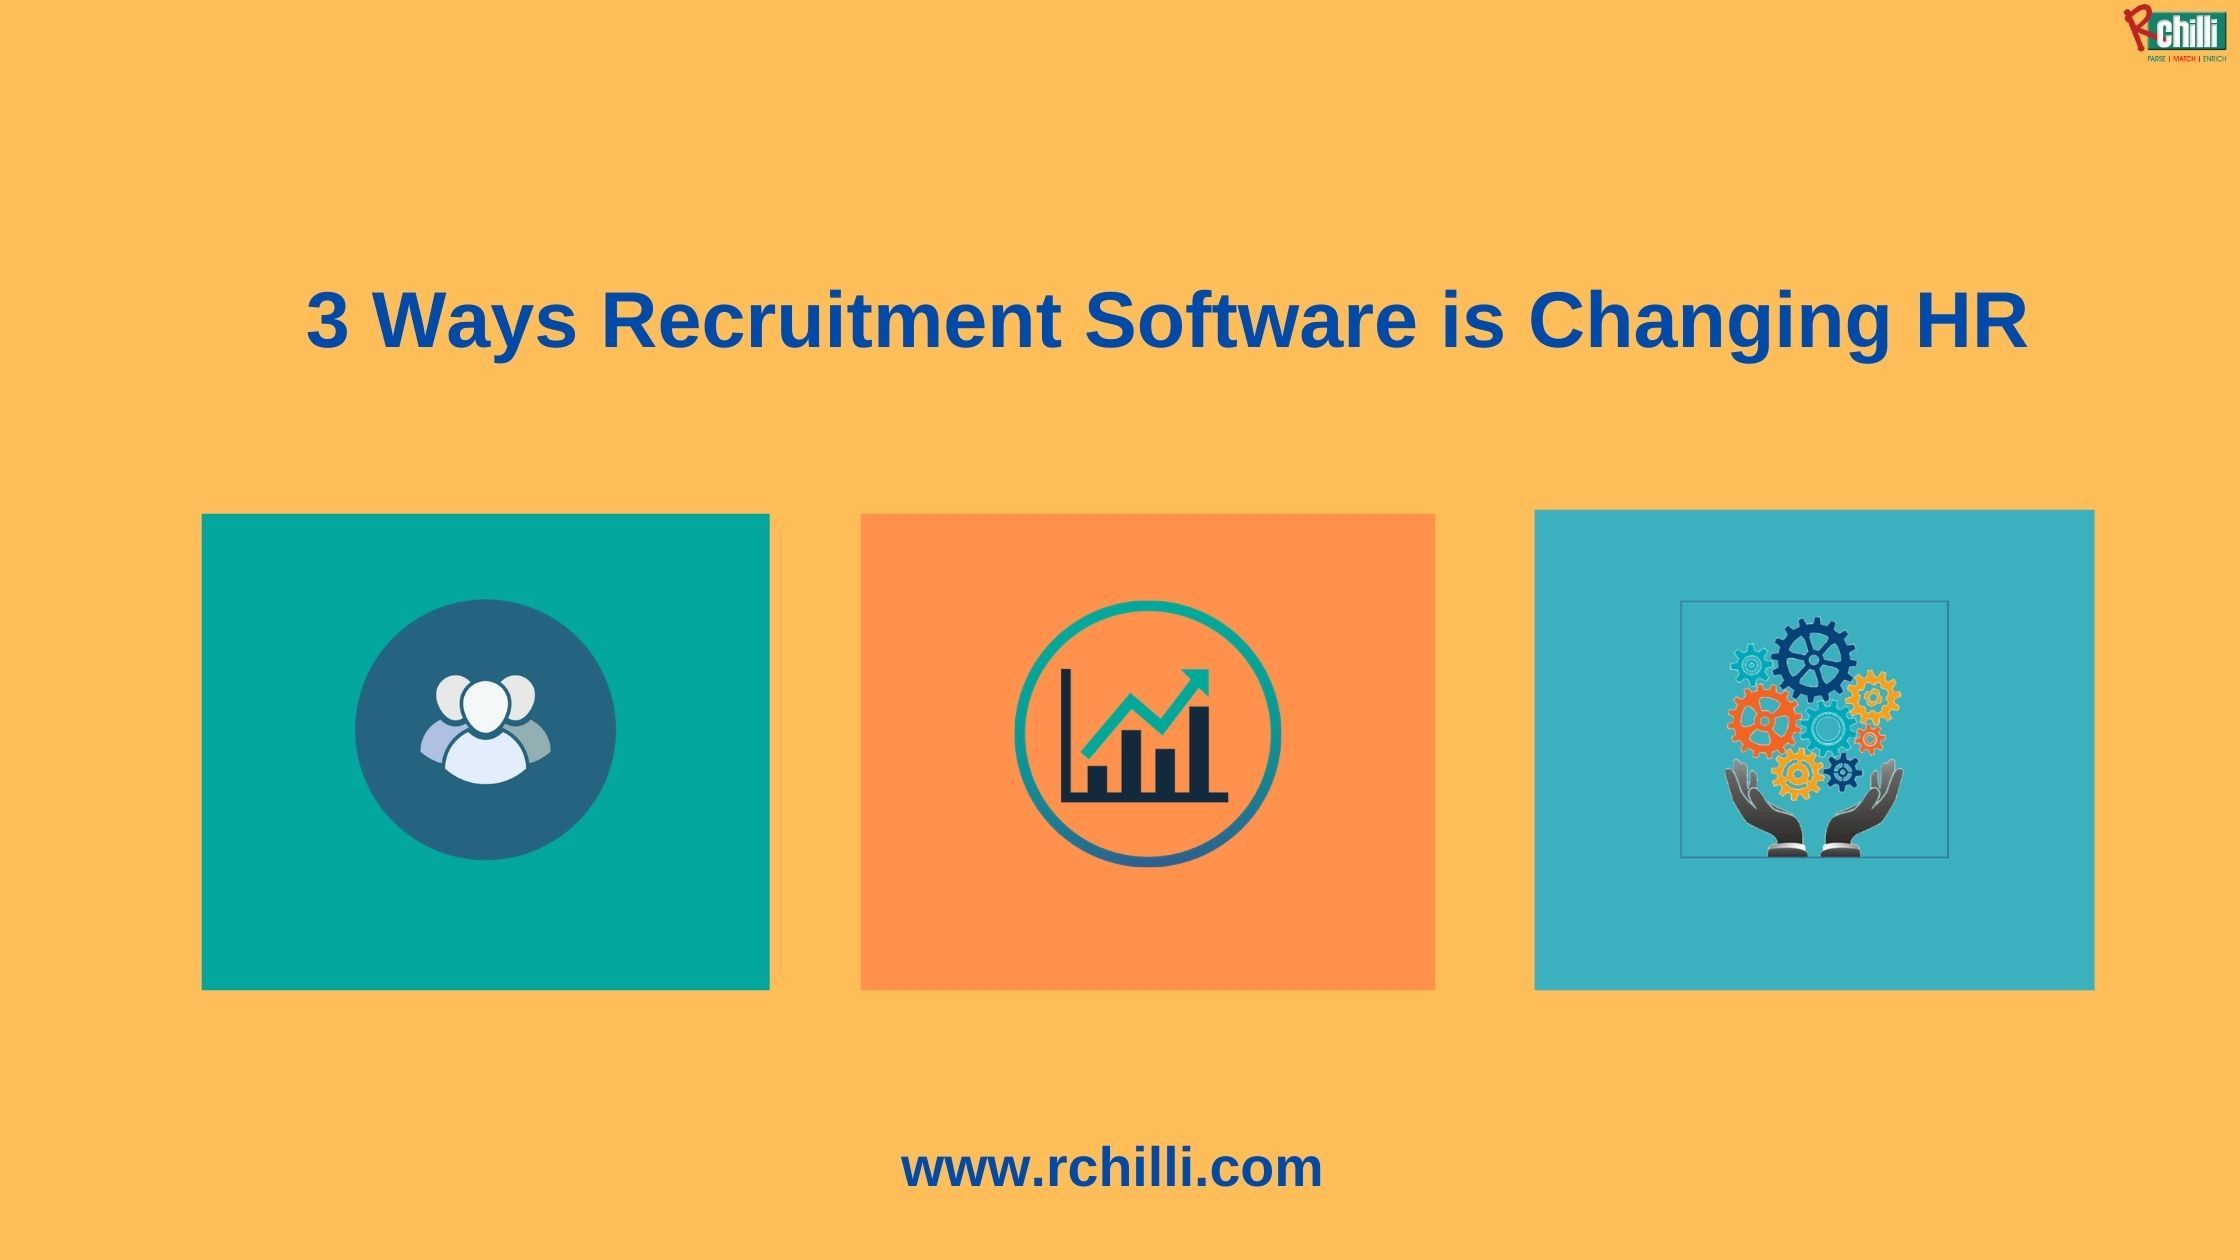 3 Ways Recruitment Software is Changing HR